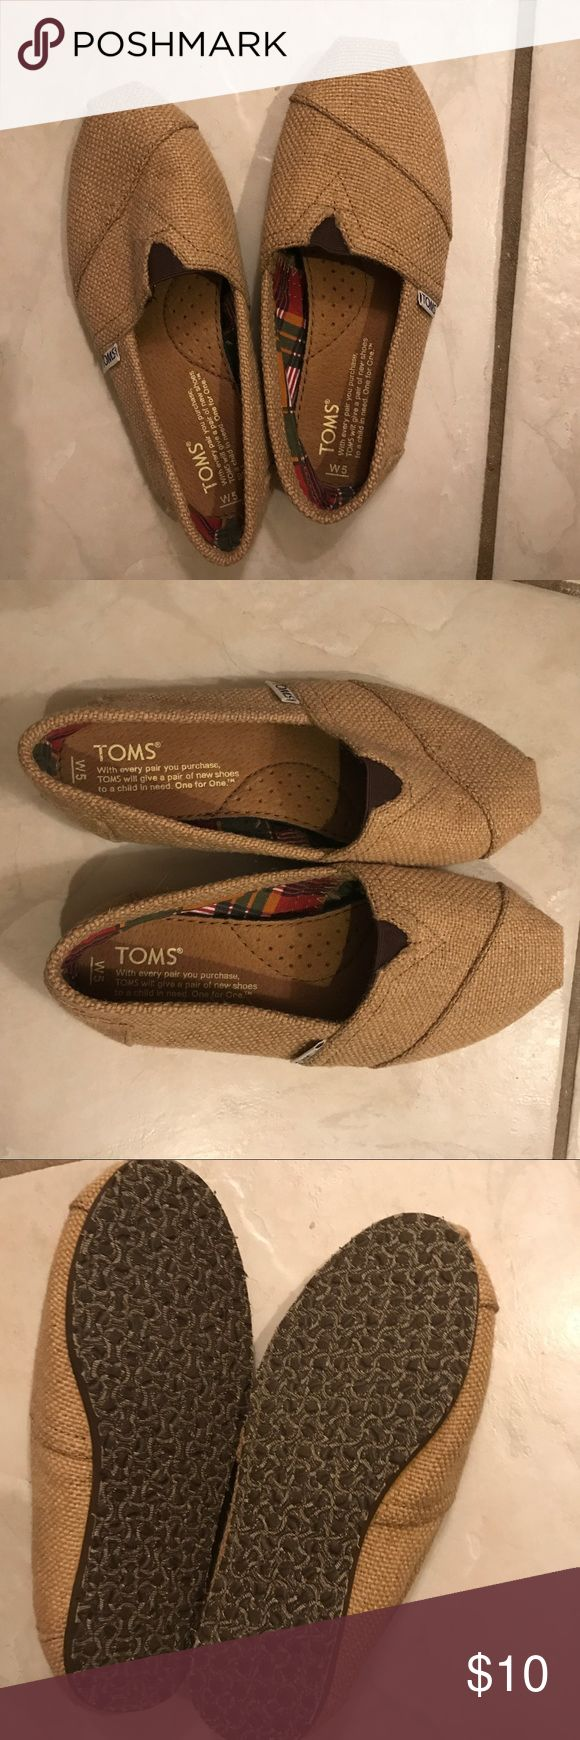 Burlap Toms Barely worn. You can see the soles in the picture.  I do not have the box. Toms Shoes Flats & Loafers